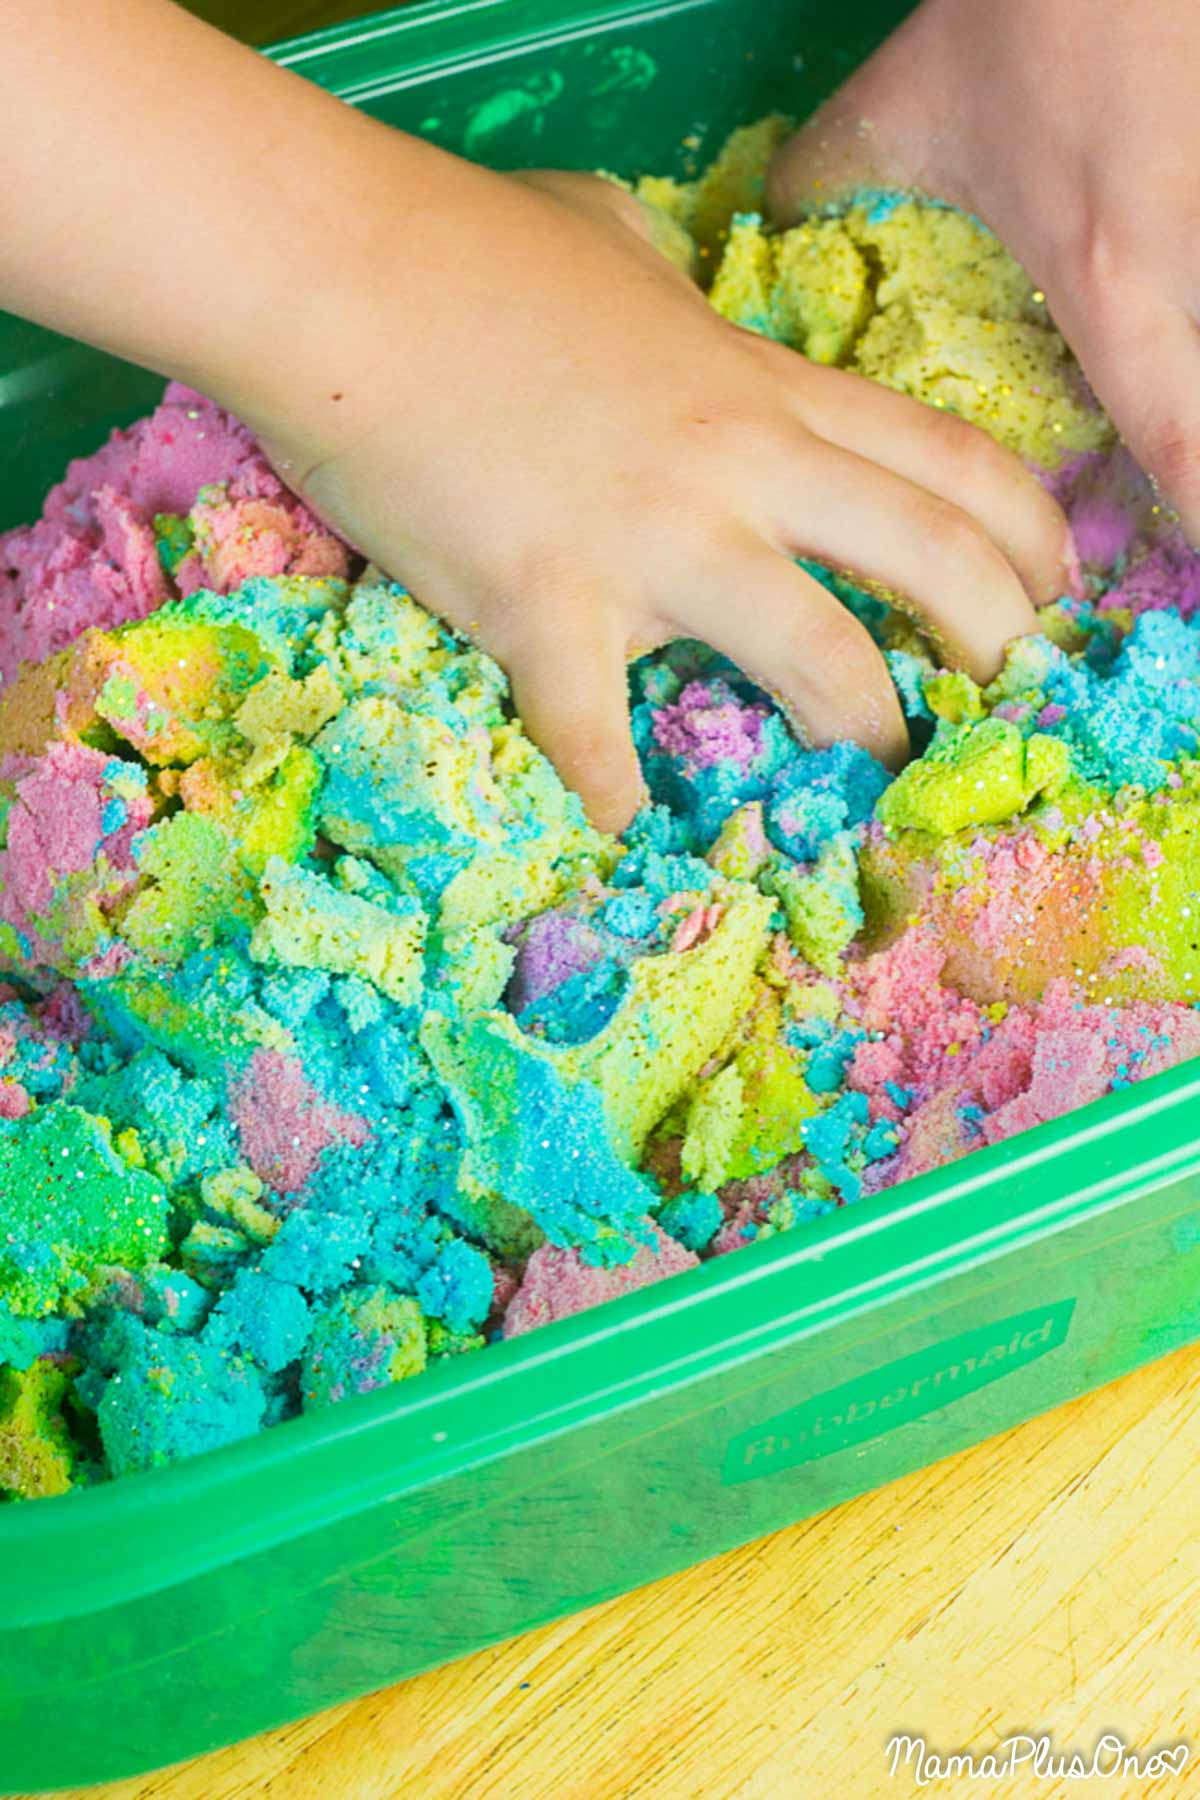 Kid playing in rainbow colored kinetic sand